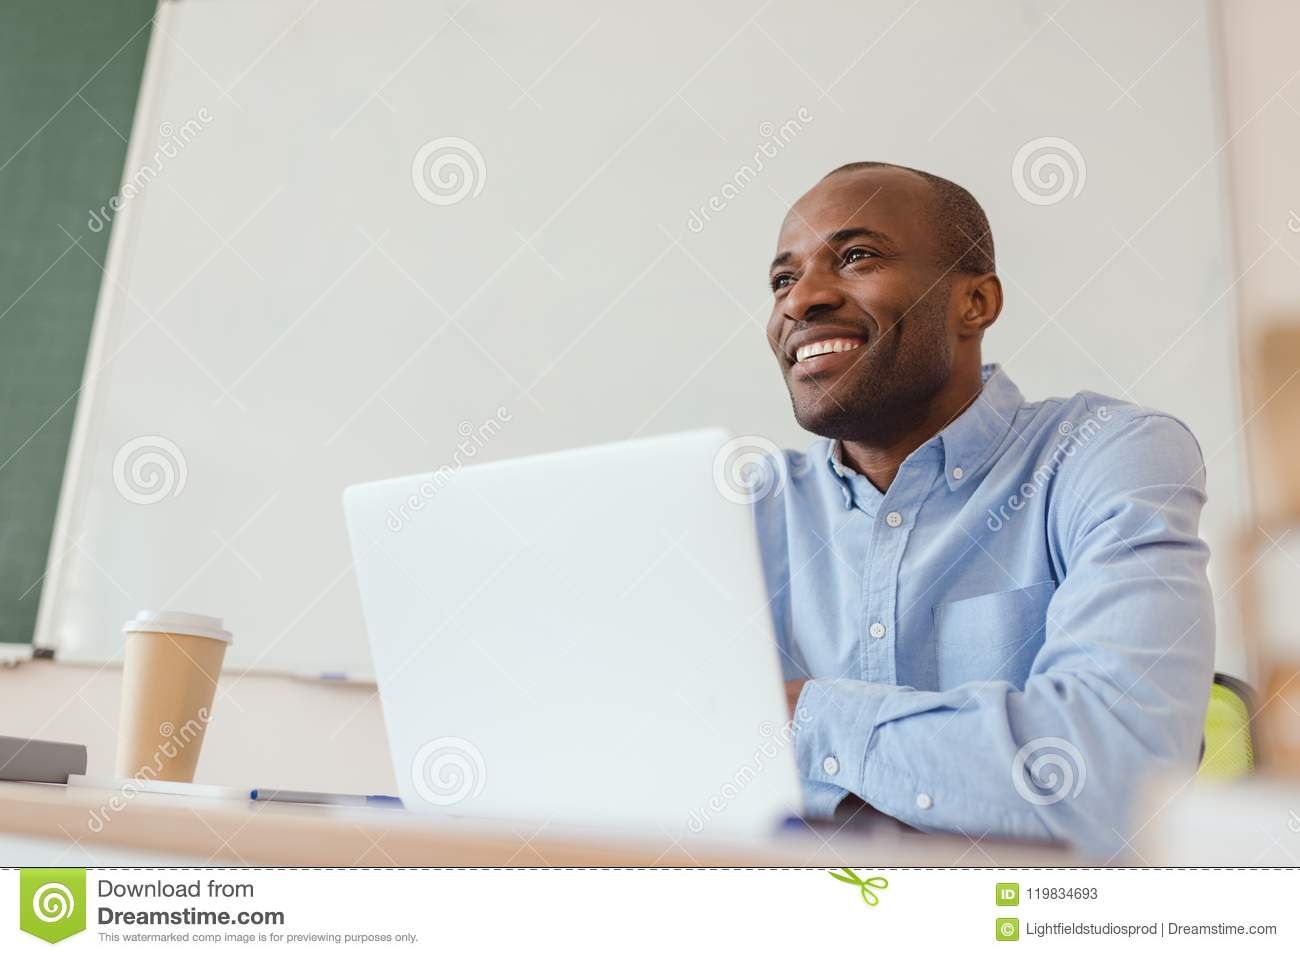 Low angle view of smiling african american teacher sitting at table with laptop